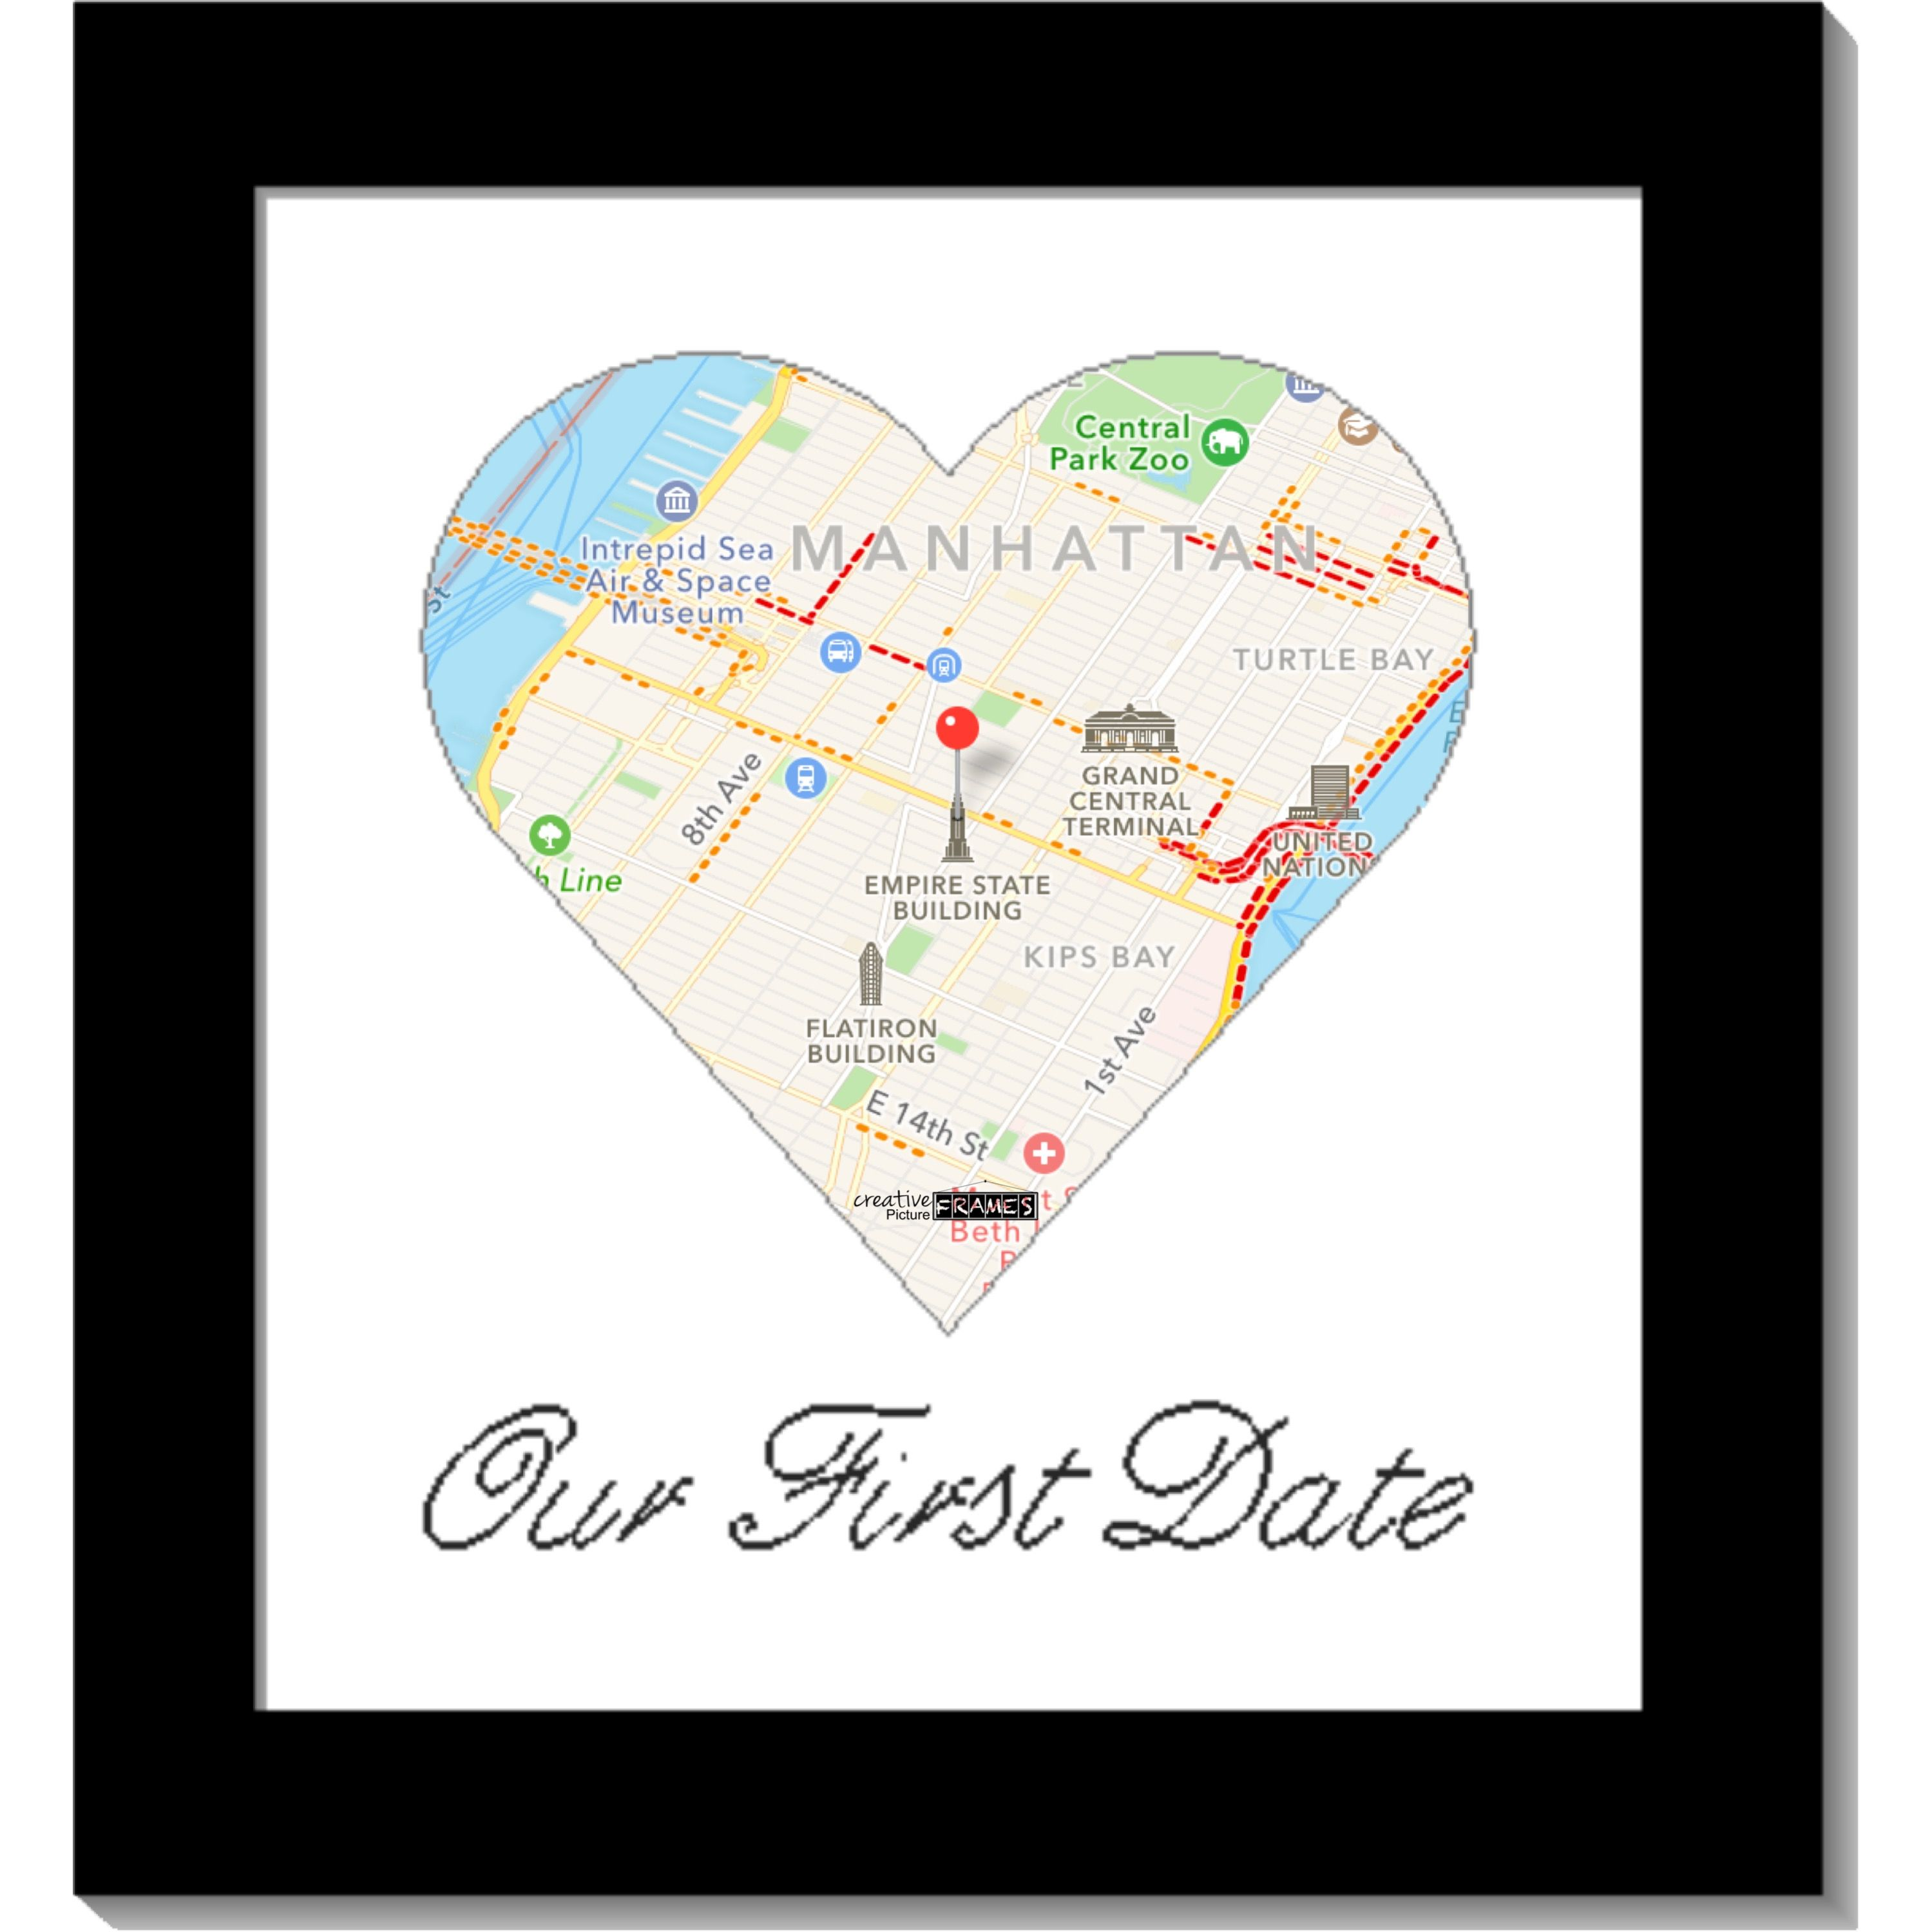 Creative first date gifts